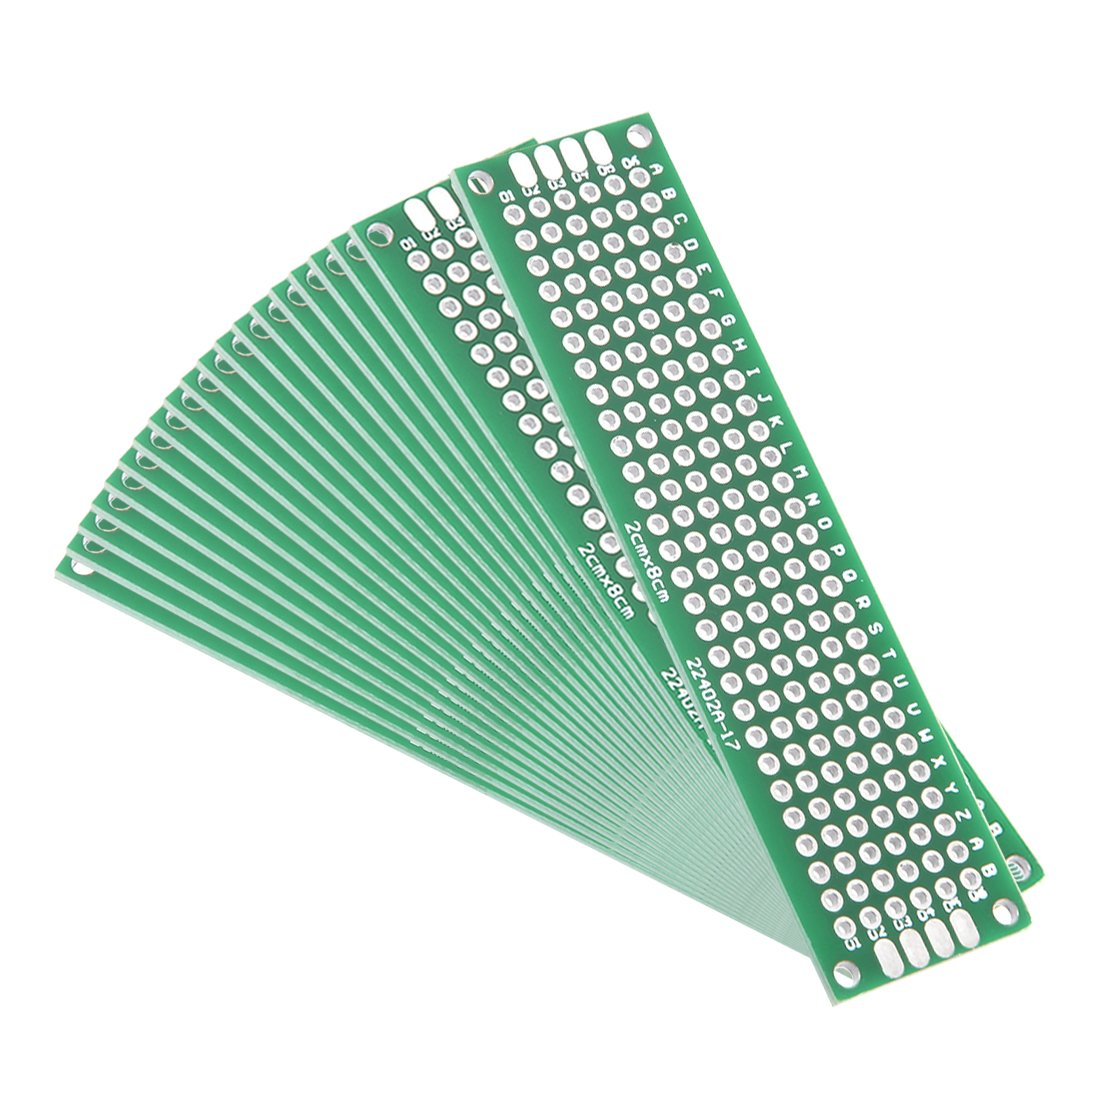 uxcell 20pcs Max 66% OFF 2x8cm Double Sided Universal Printed PCB Circ Board Direct store